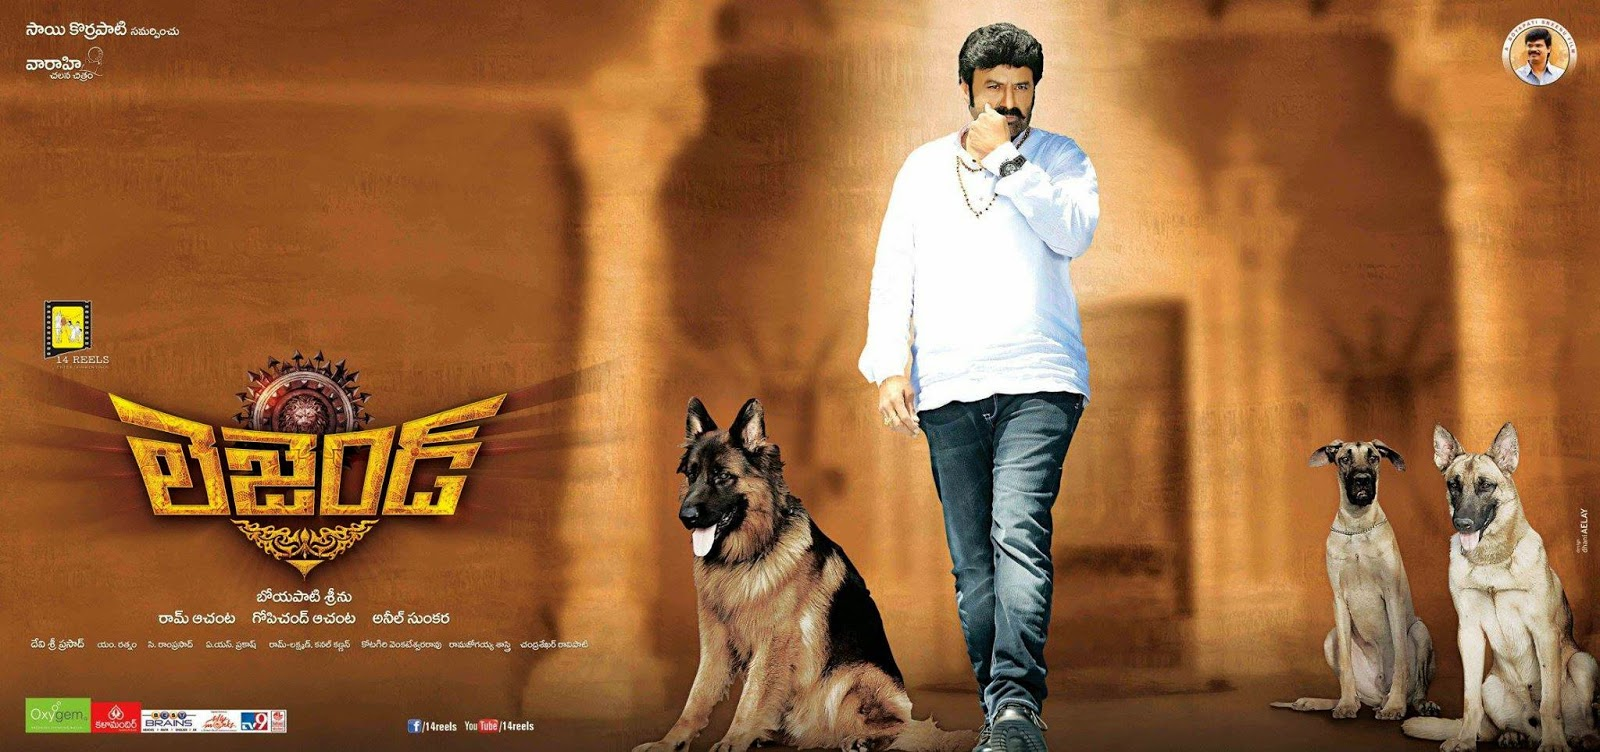 Legend 2014 Telugu Movie Watch Online